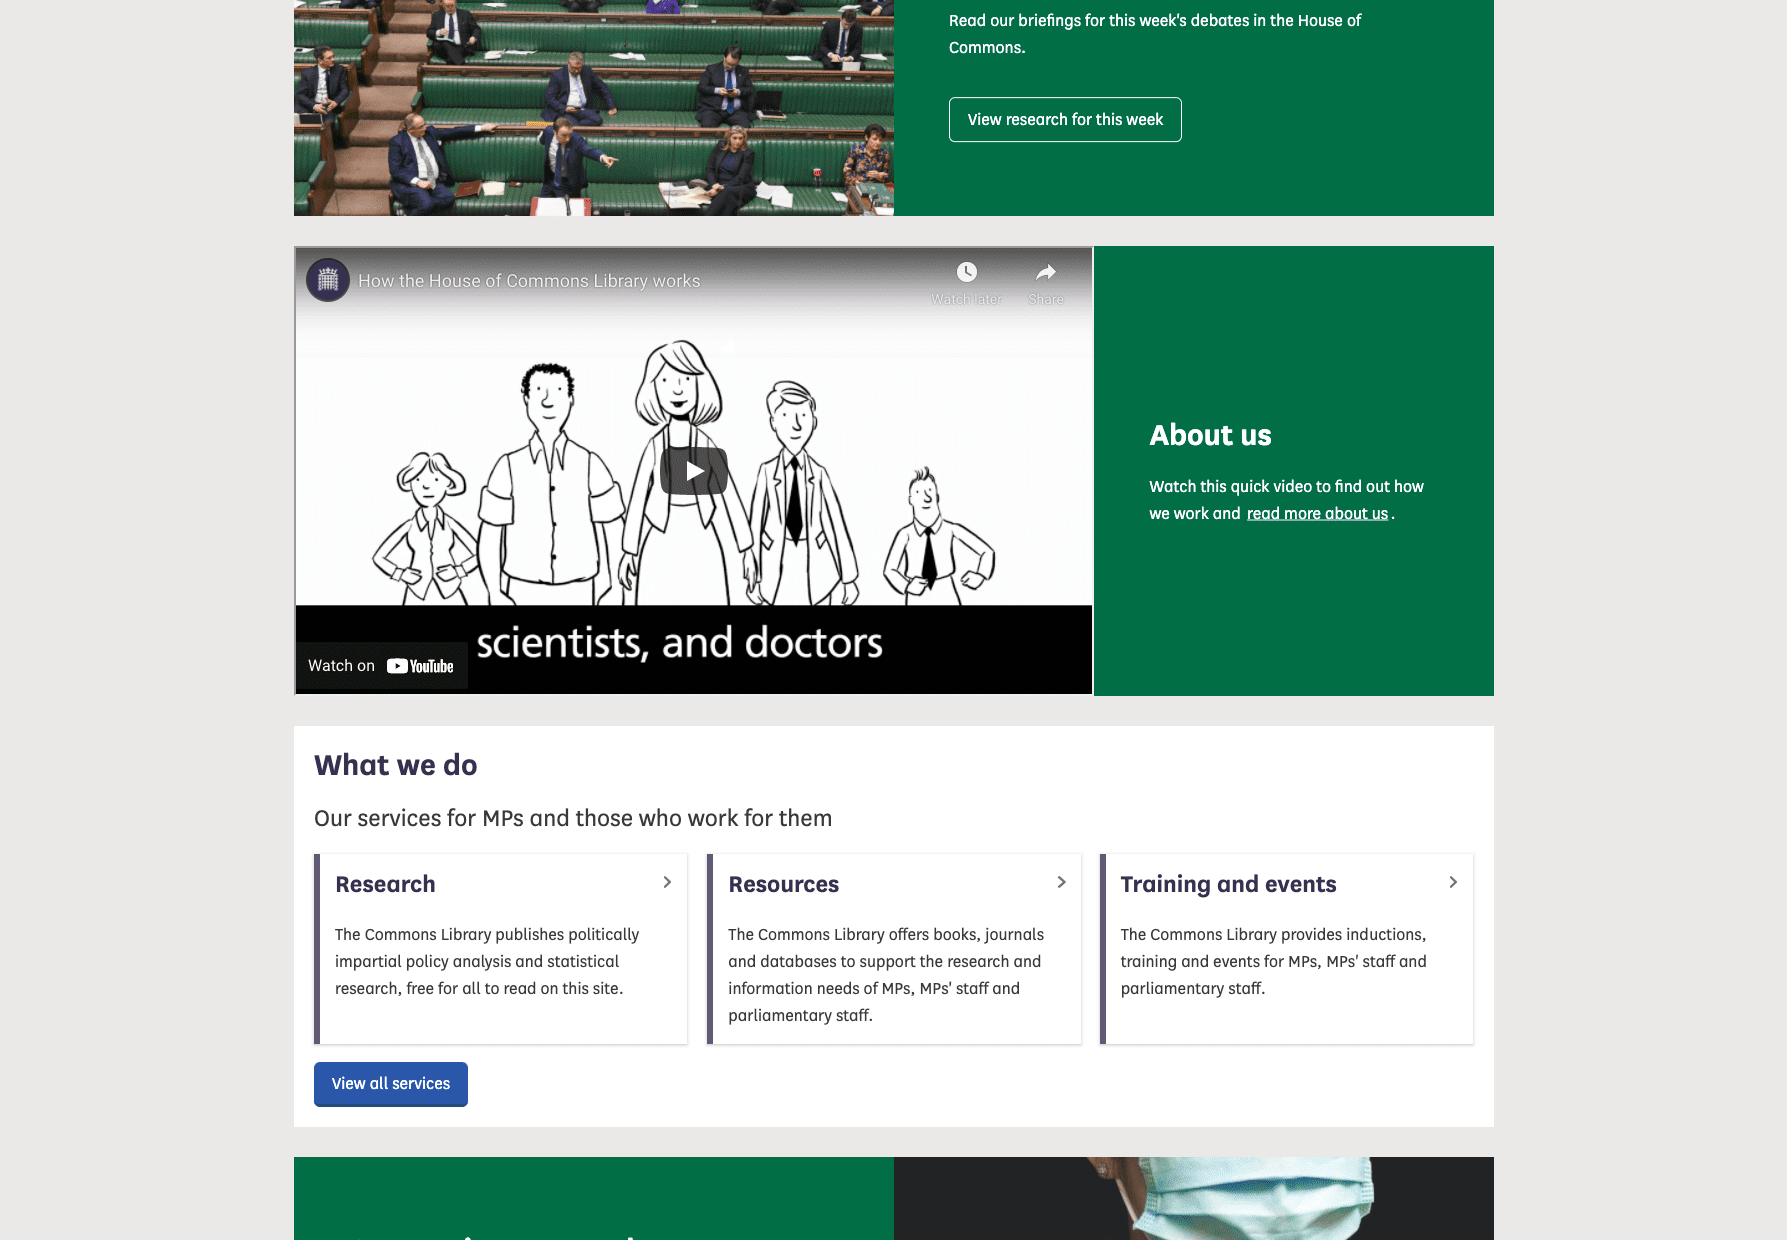 The House of Commons Library website homepage